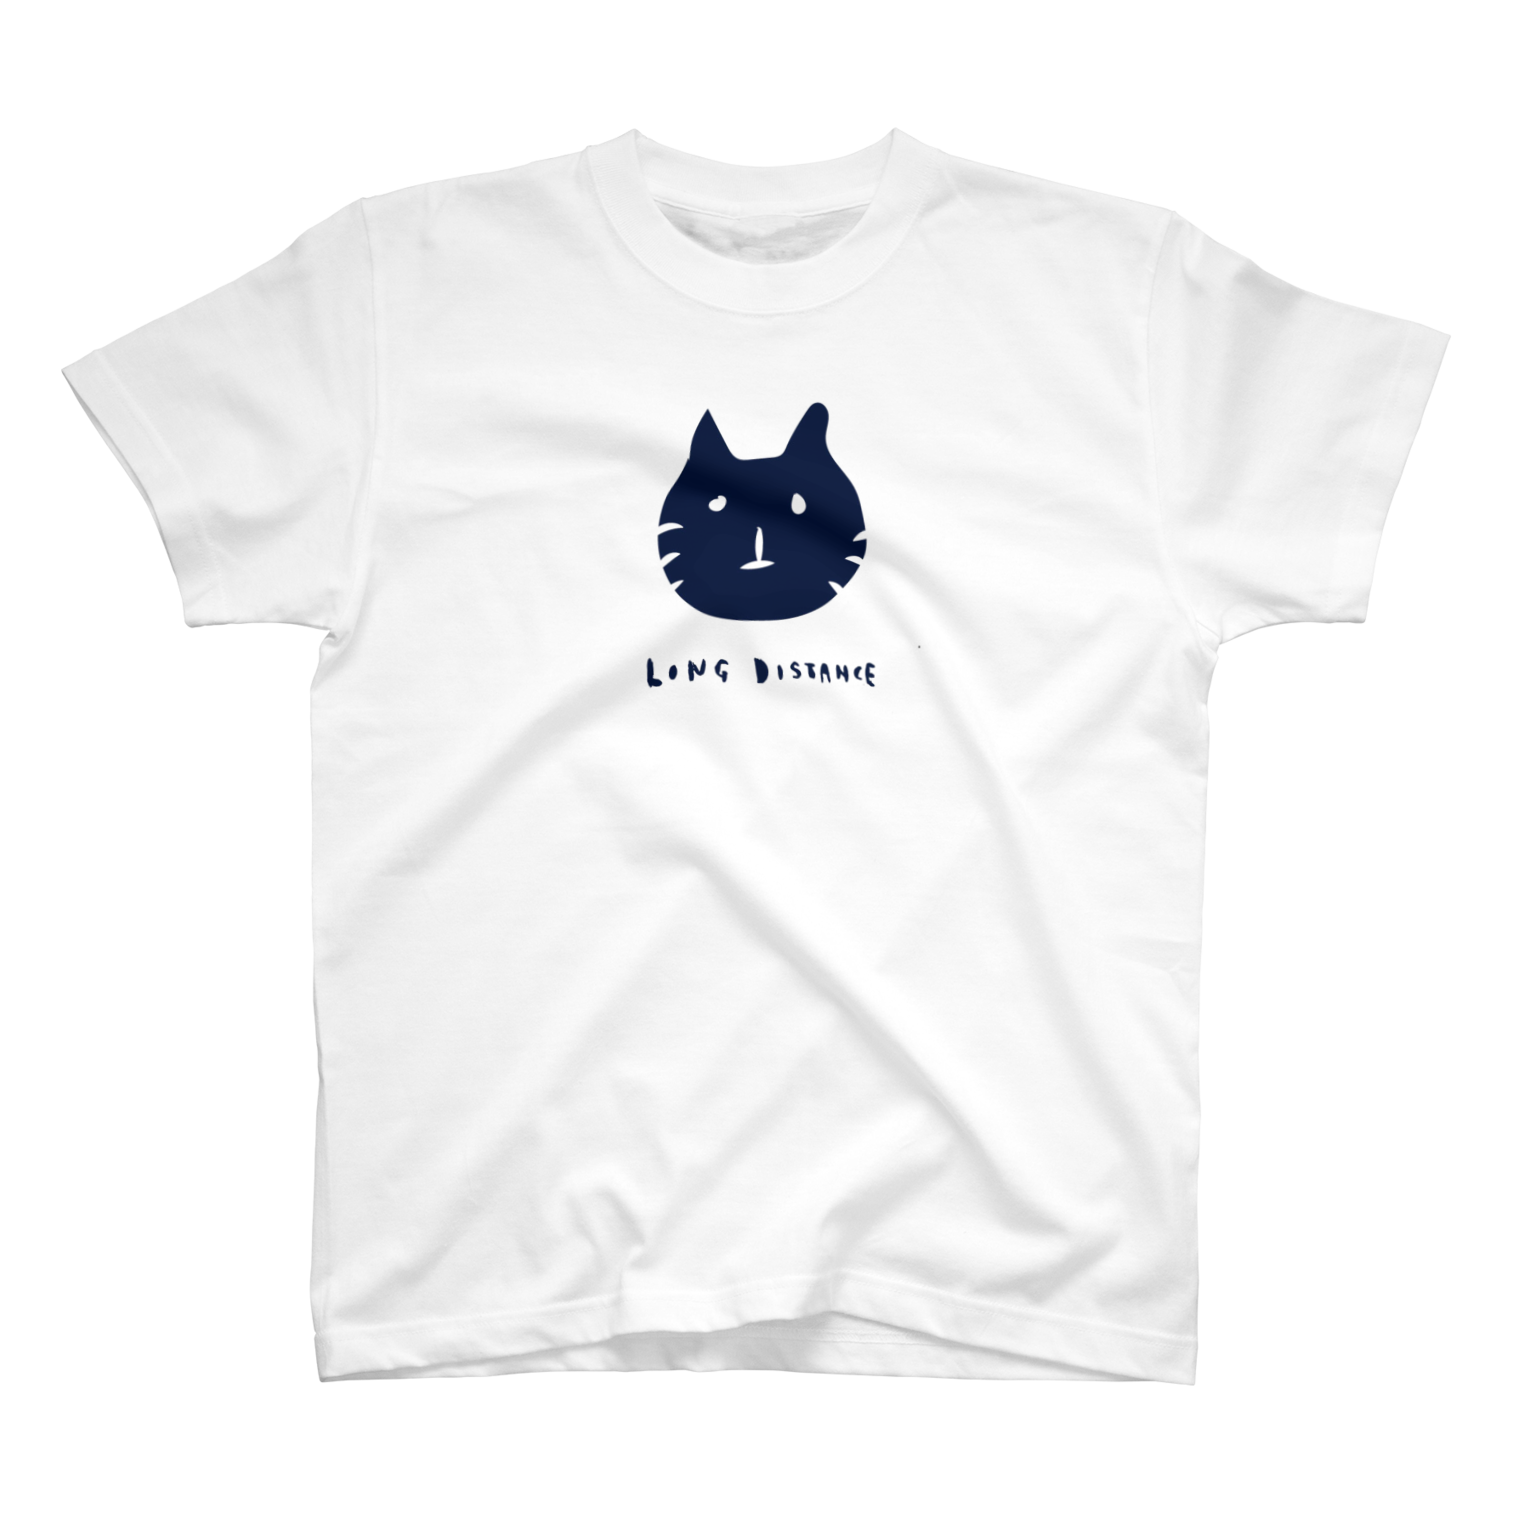 long distance(cat) Tシャツ